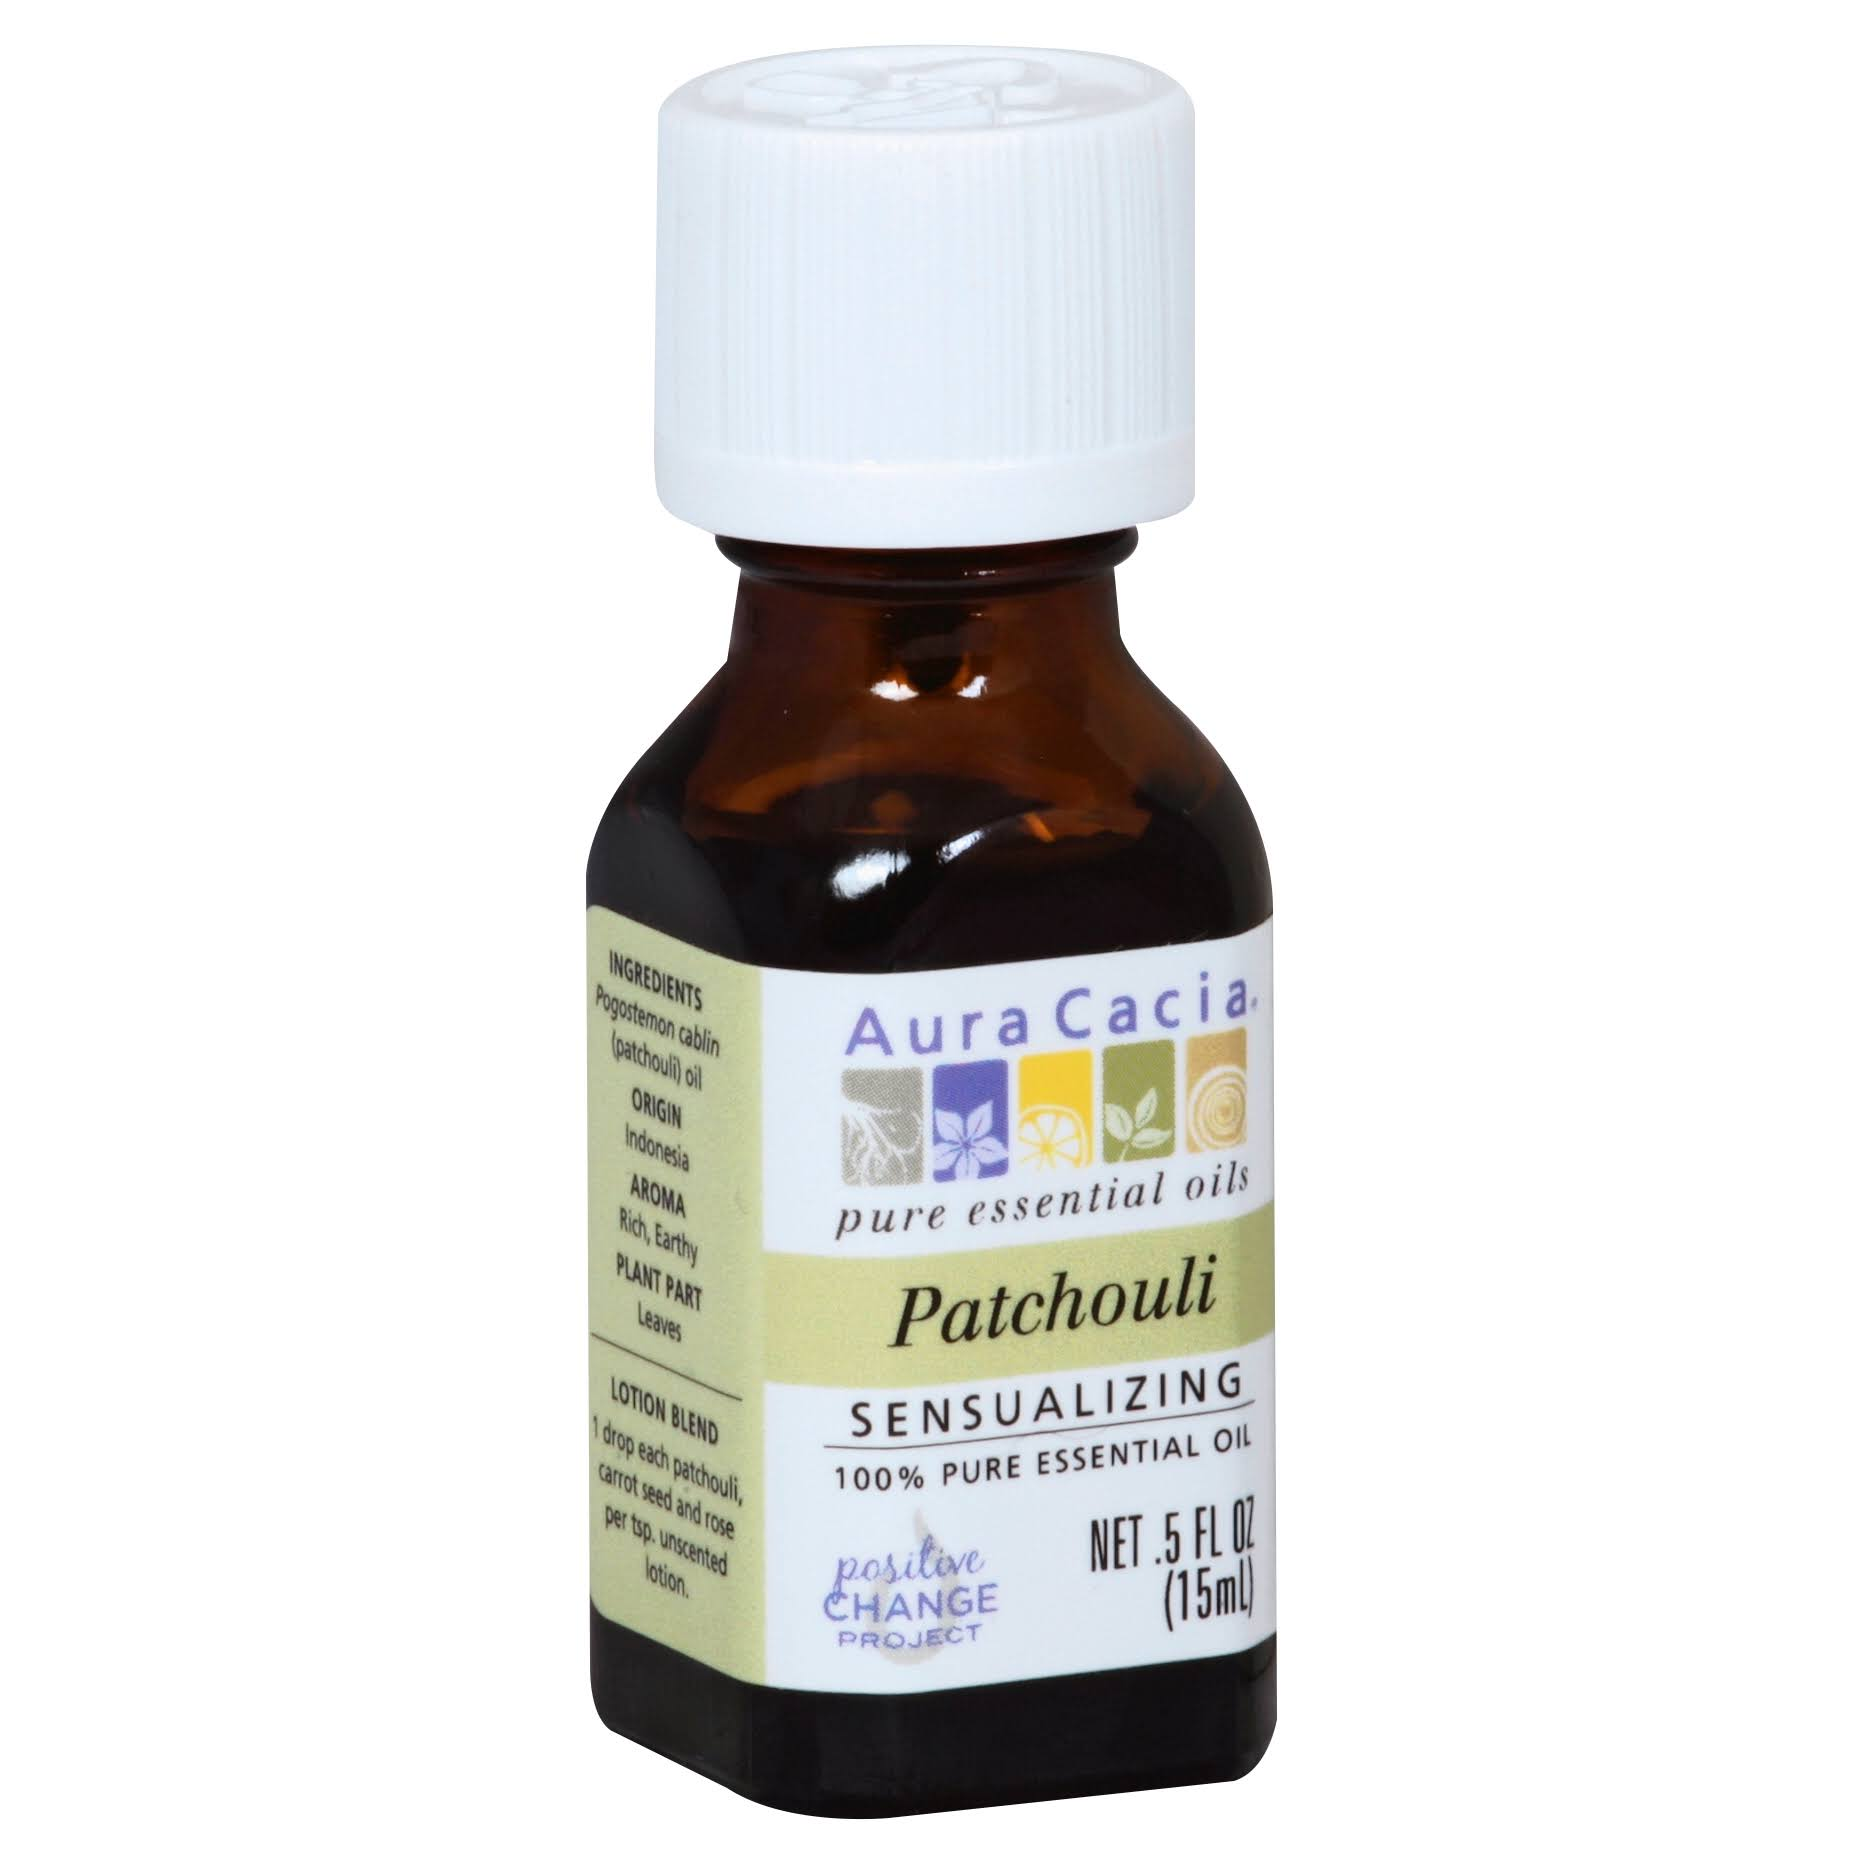 Aura Cacia Sensualizing Pure Essential Oil - Patchouli